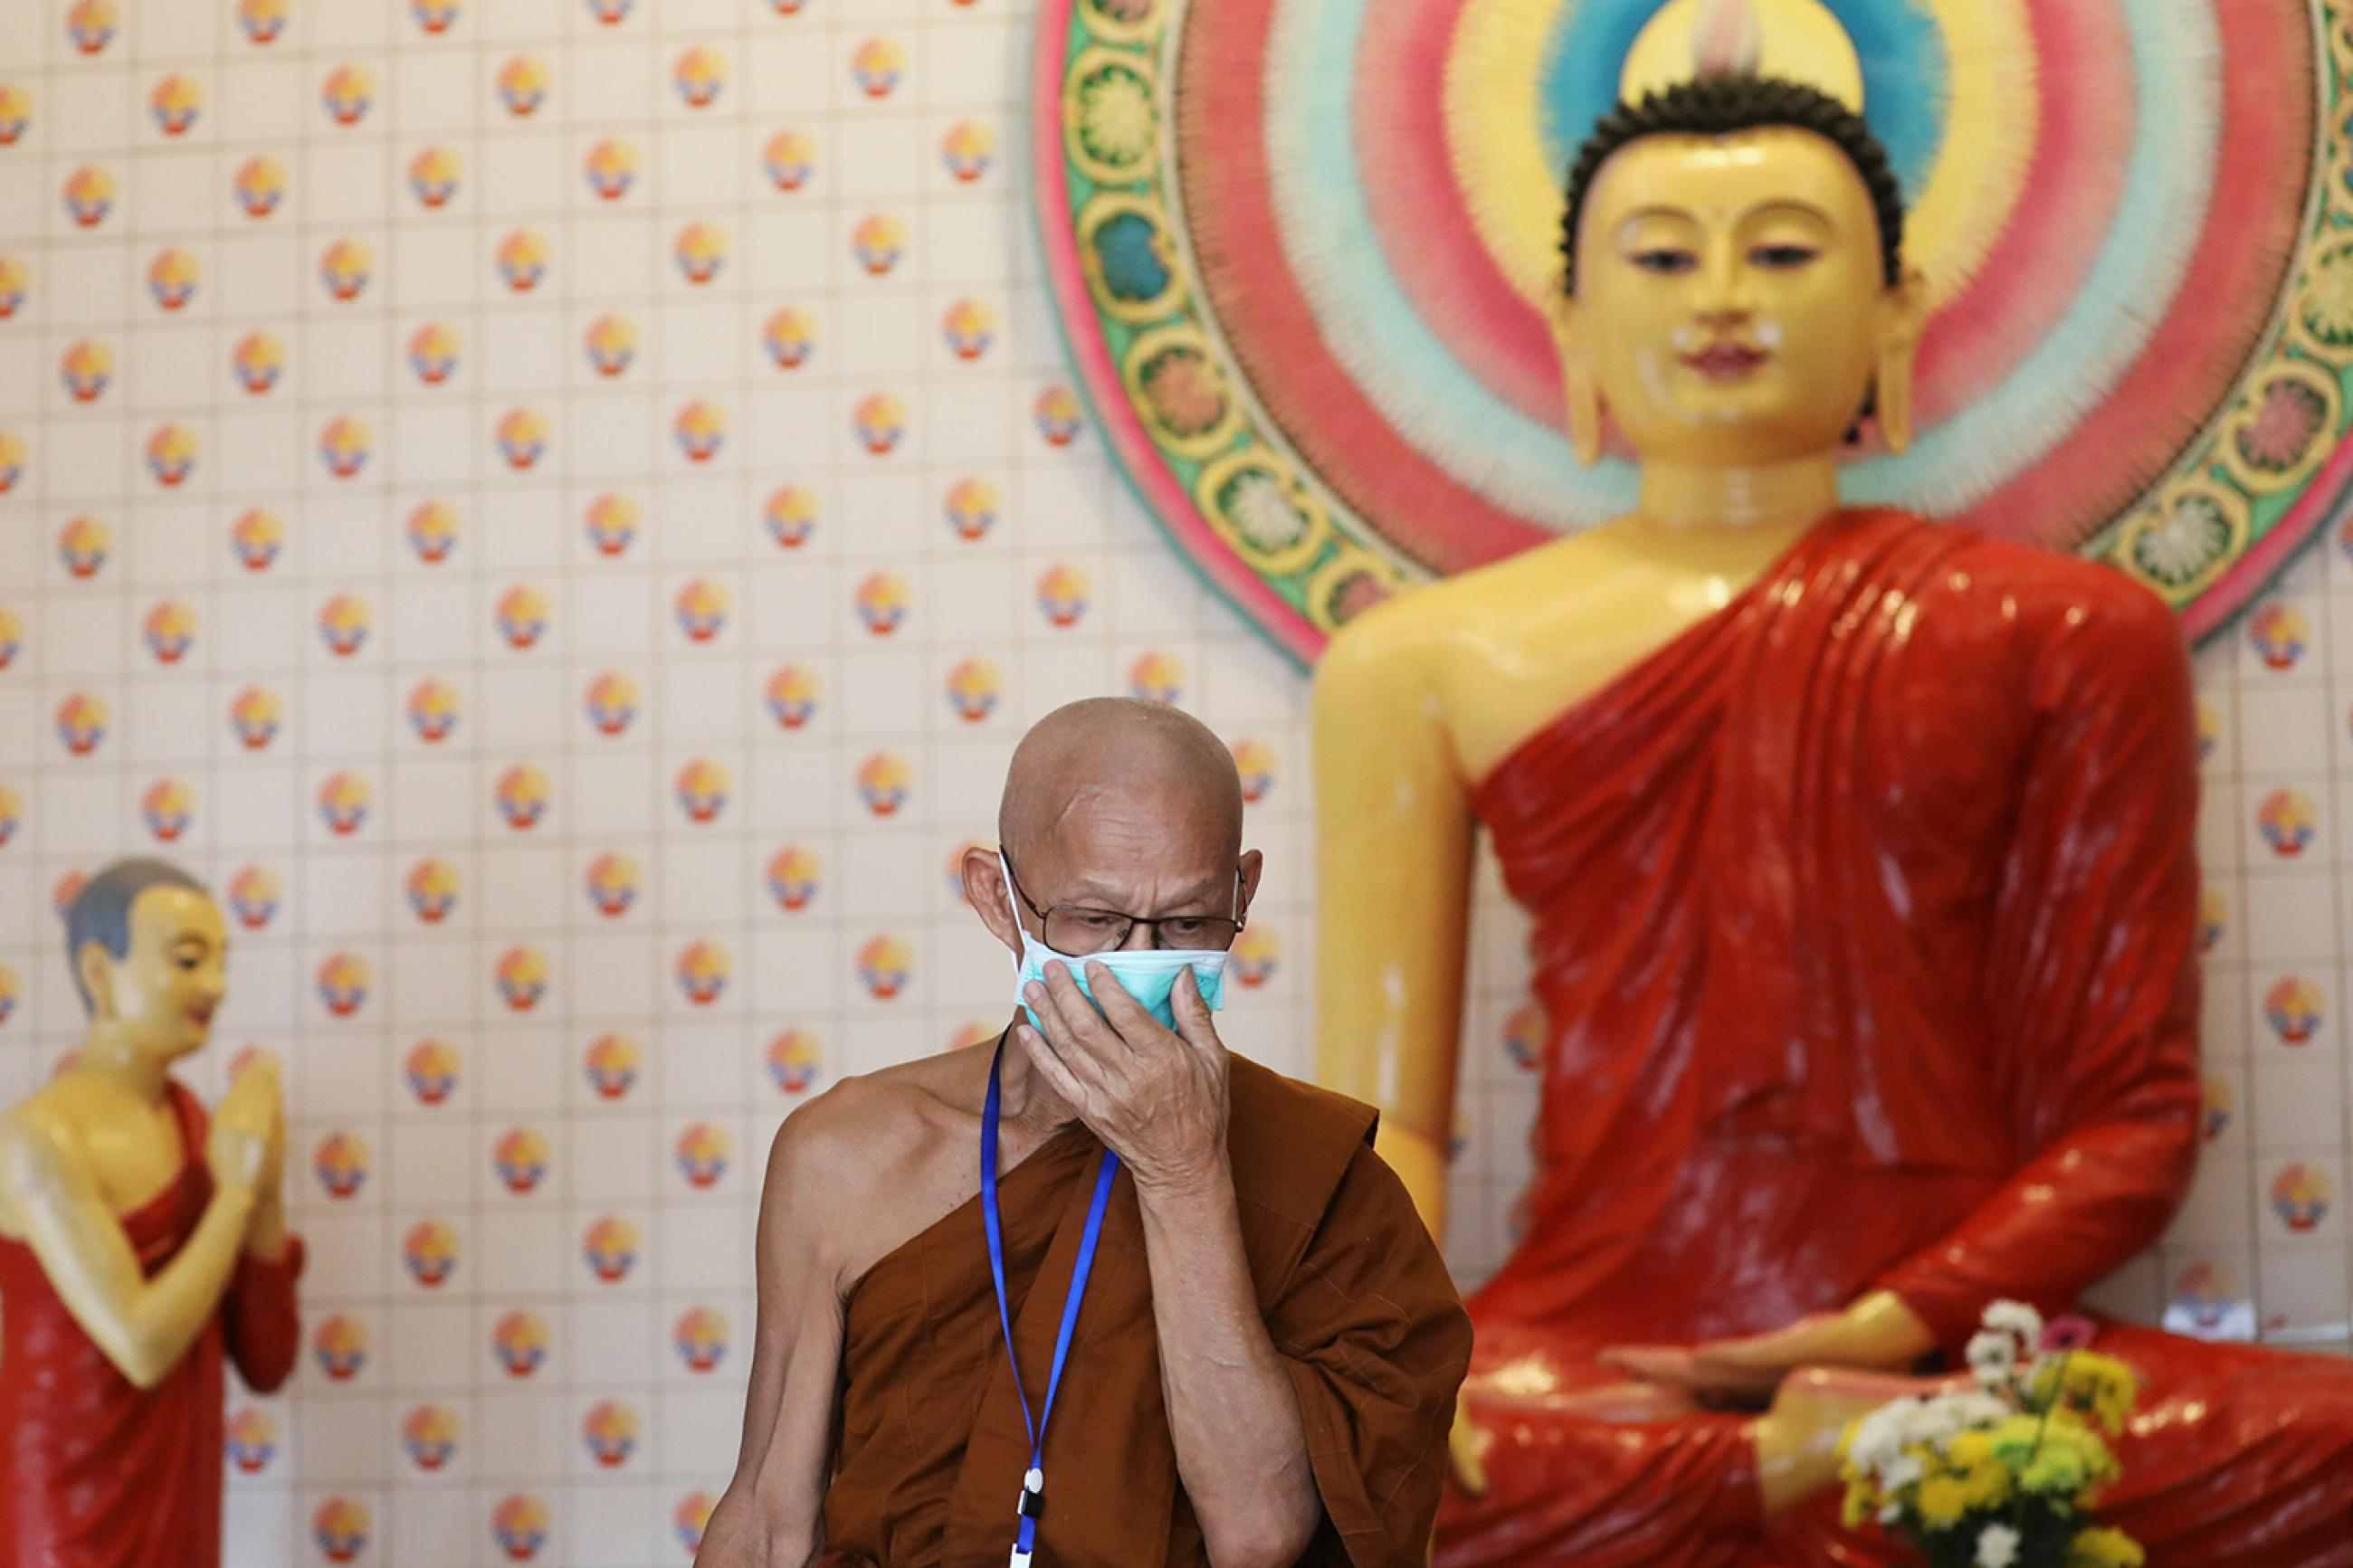 A Buddhist monk adjusts his protective face mask before a blessing ceremony for the people affected by the COVID-19 coronavirus outbreak, at a temple in Kuala Lumpur, Malaysia on February 22, 2020. This is a striking image with the monk in the foreground and some very colourful Buddhist temple features in the background. REUTERS/Lim Huey Teng